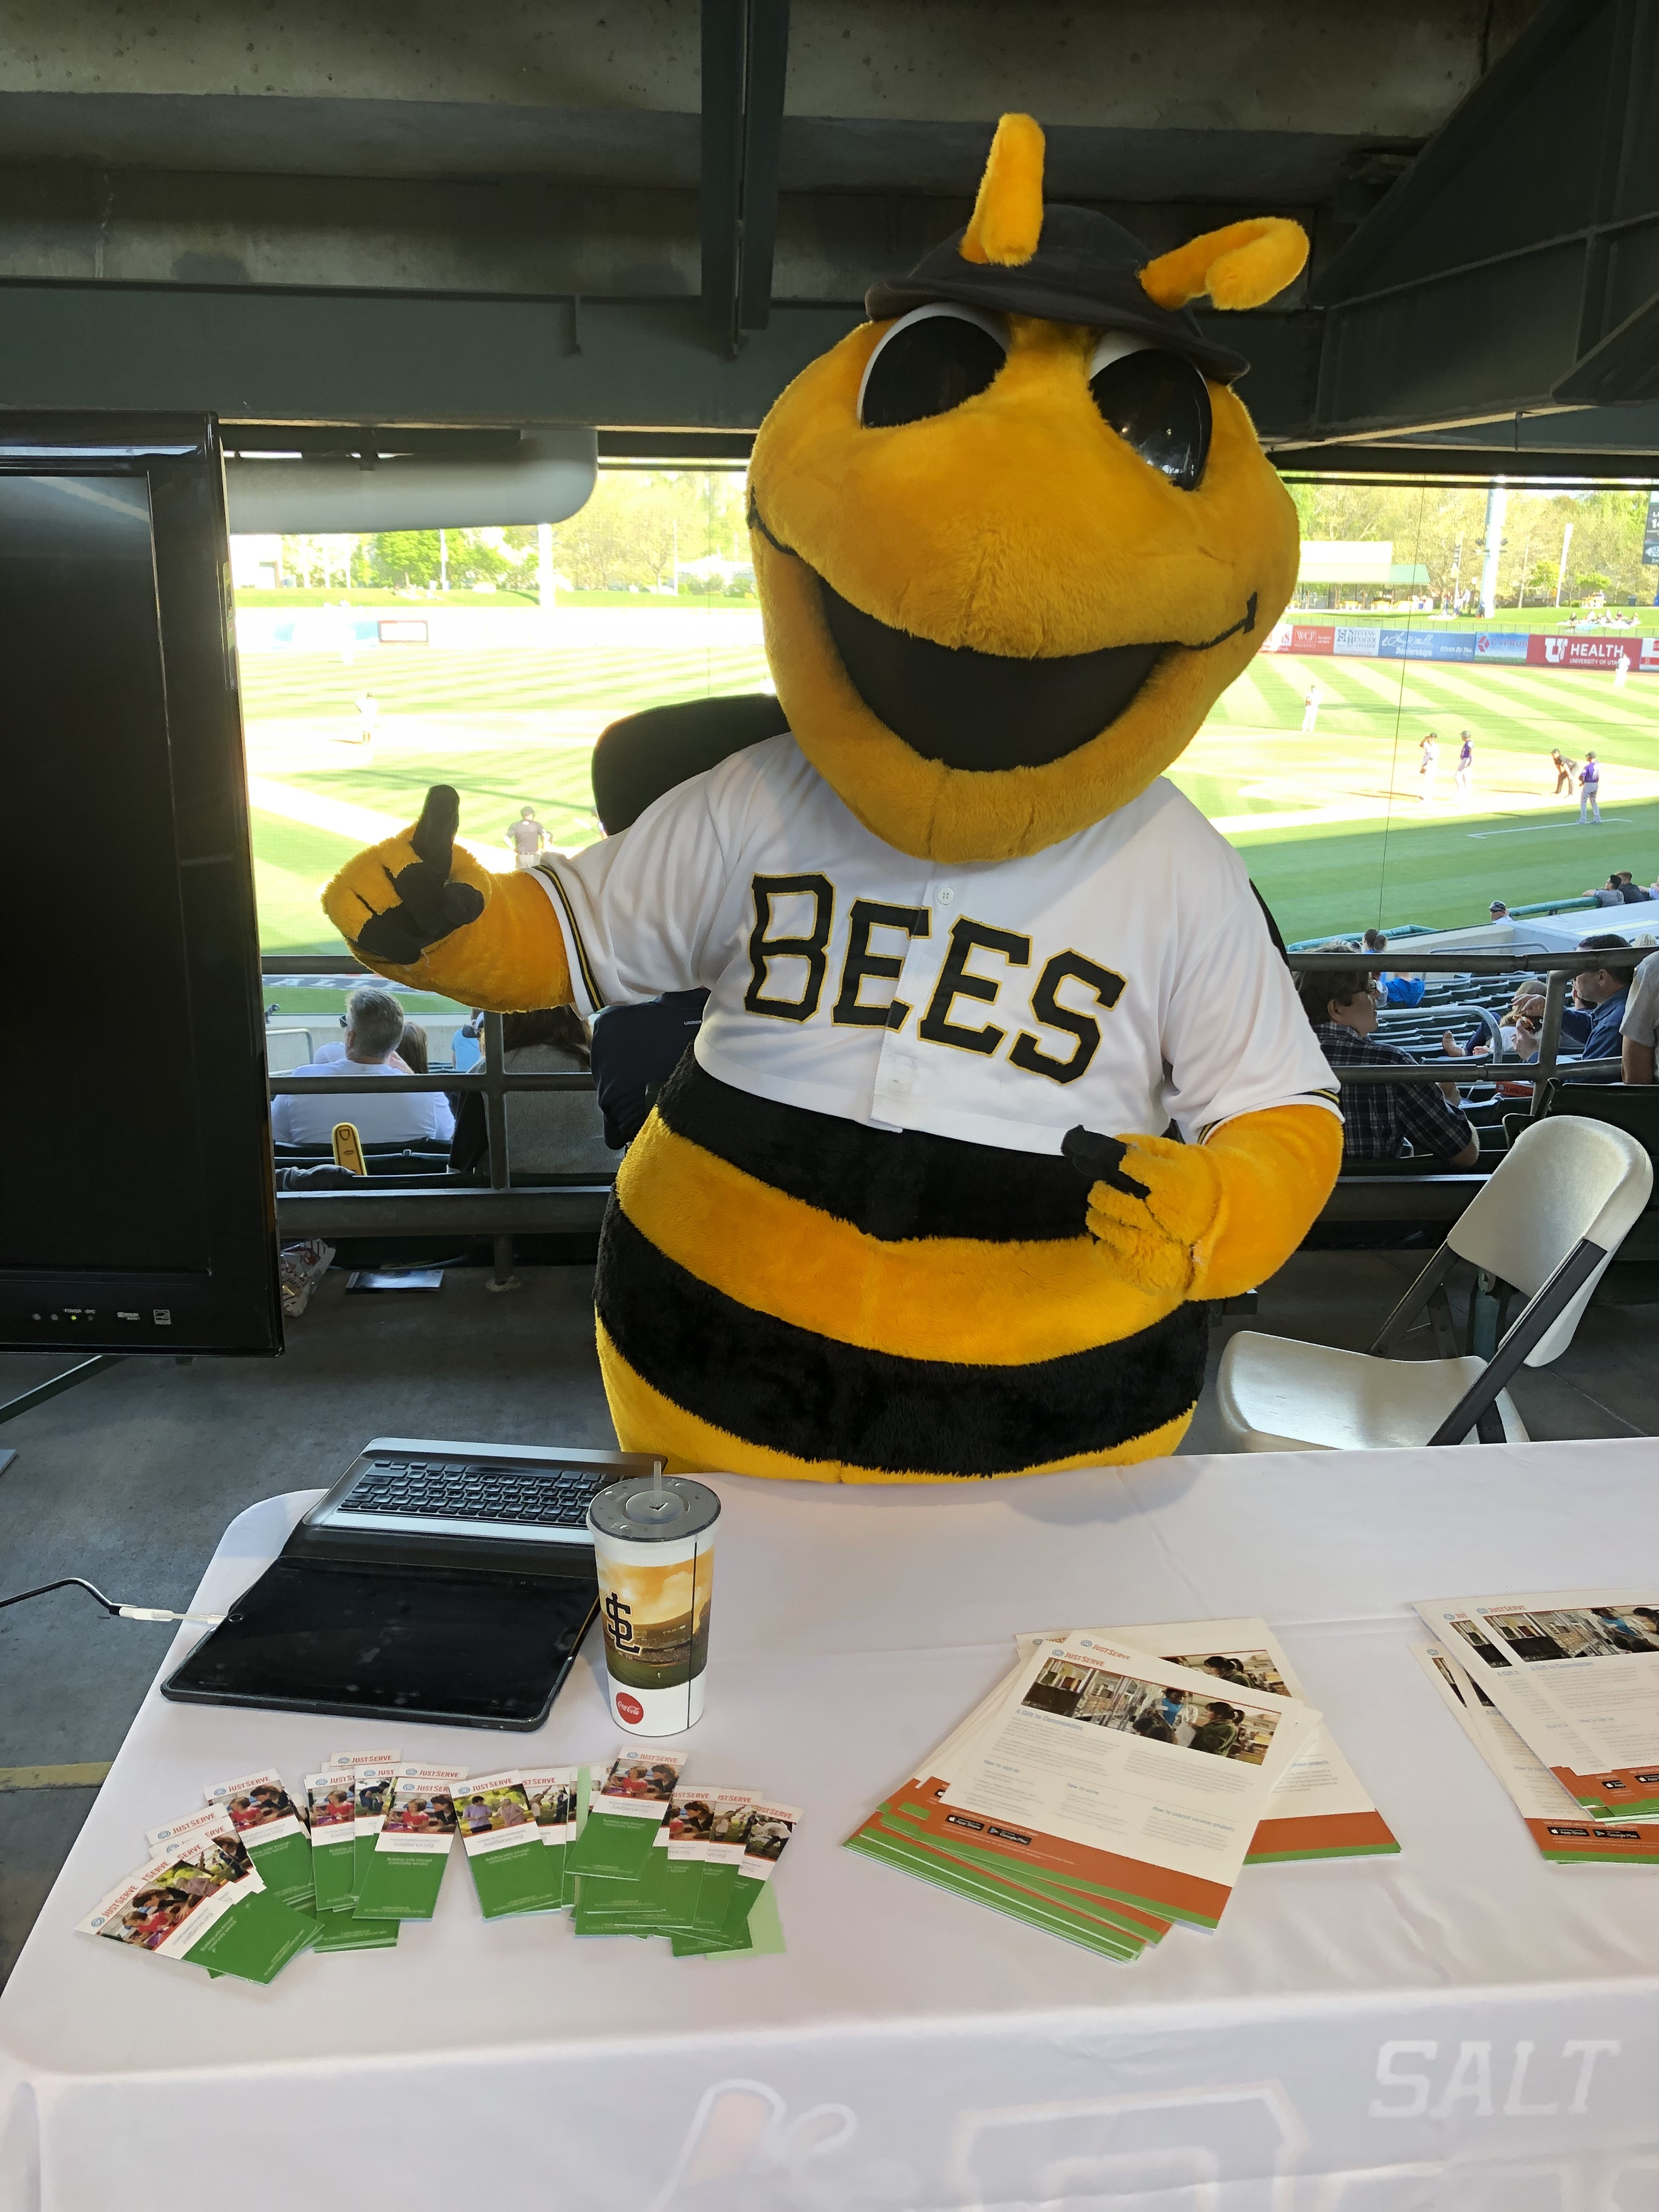 The Salt Lake Bees mascot helps at the JustServe information table at the Bees game on April 27.